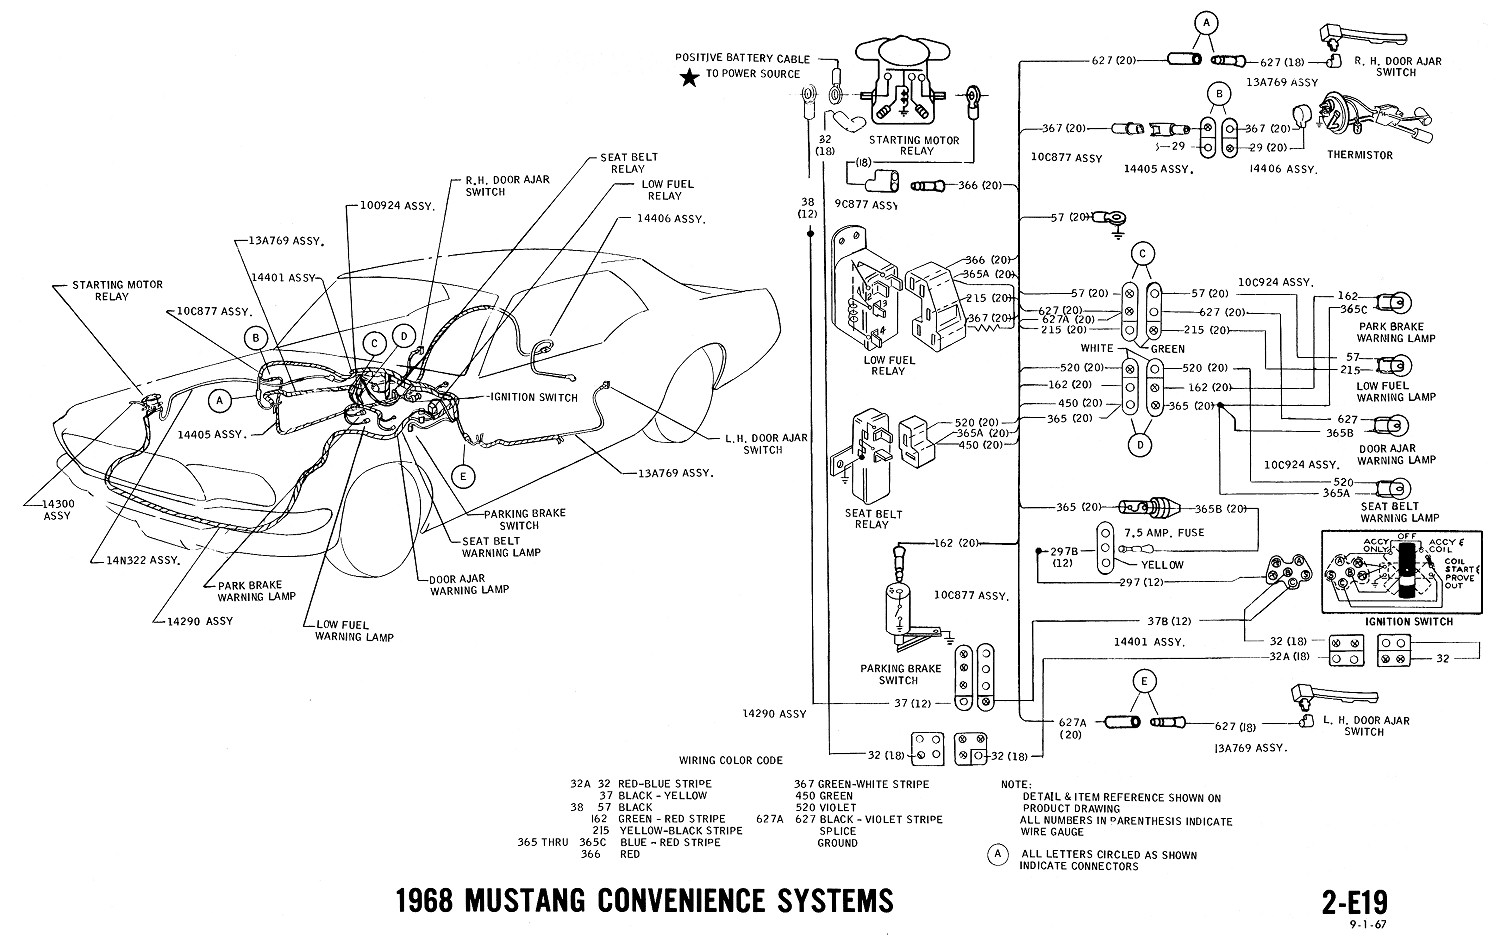 E19 1968 mustang wiring diagrams evolving software Multi Speed Blower Motor Wiring at virtualis.co